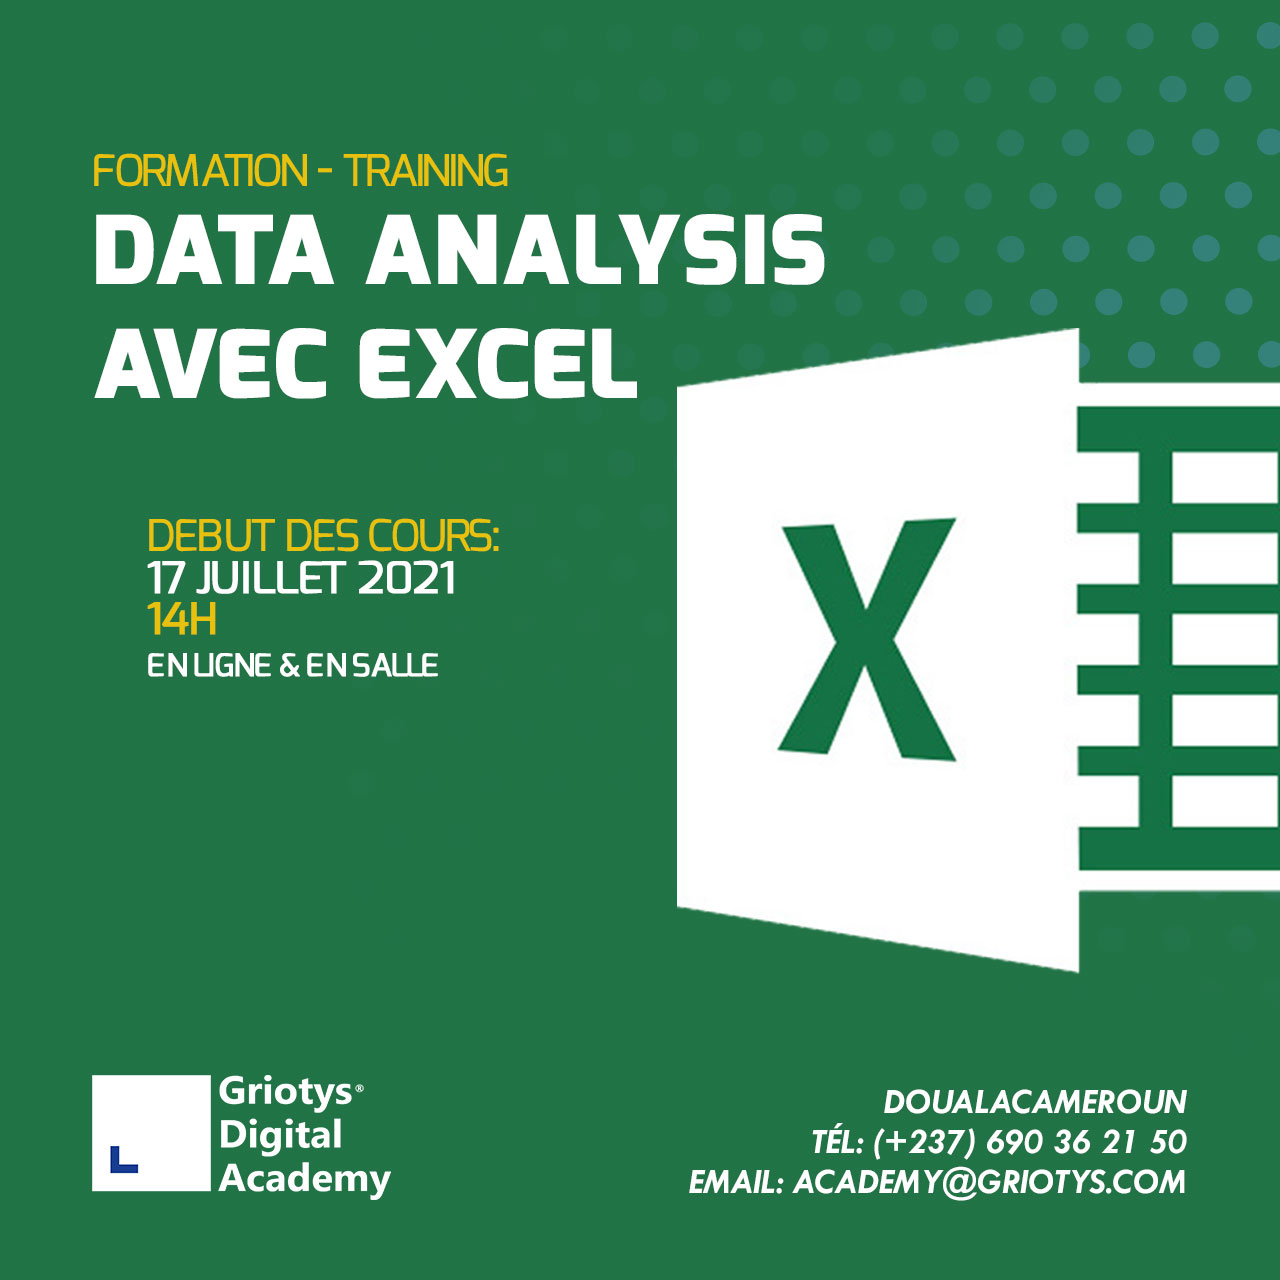 Formation-analysis avec excel-Griotys-Digital-Academy